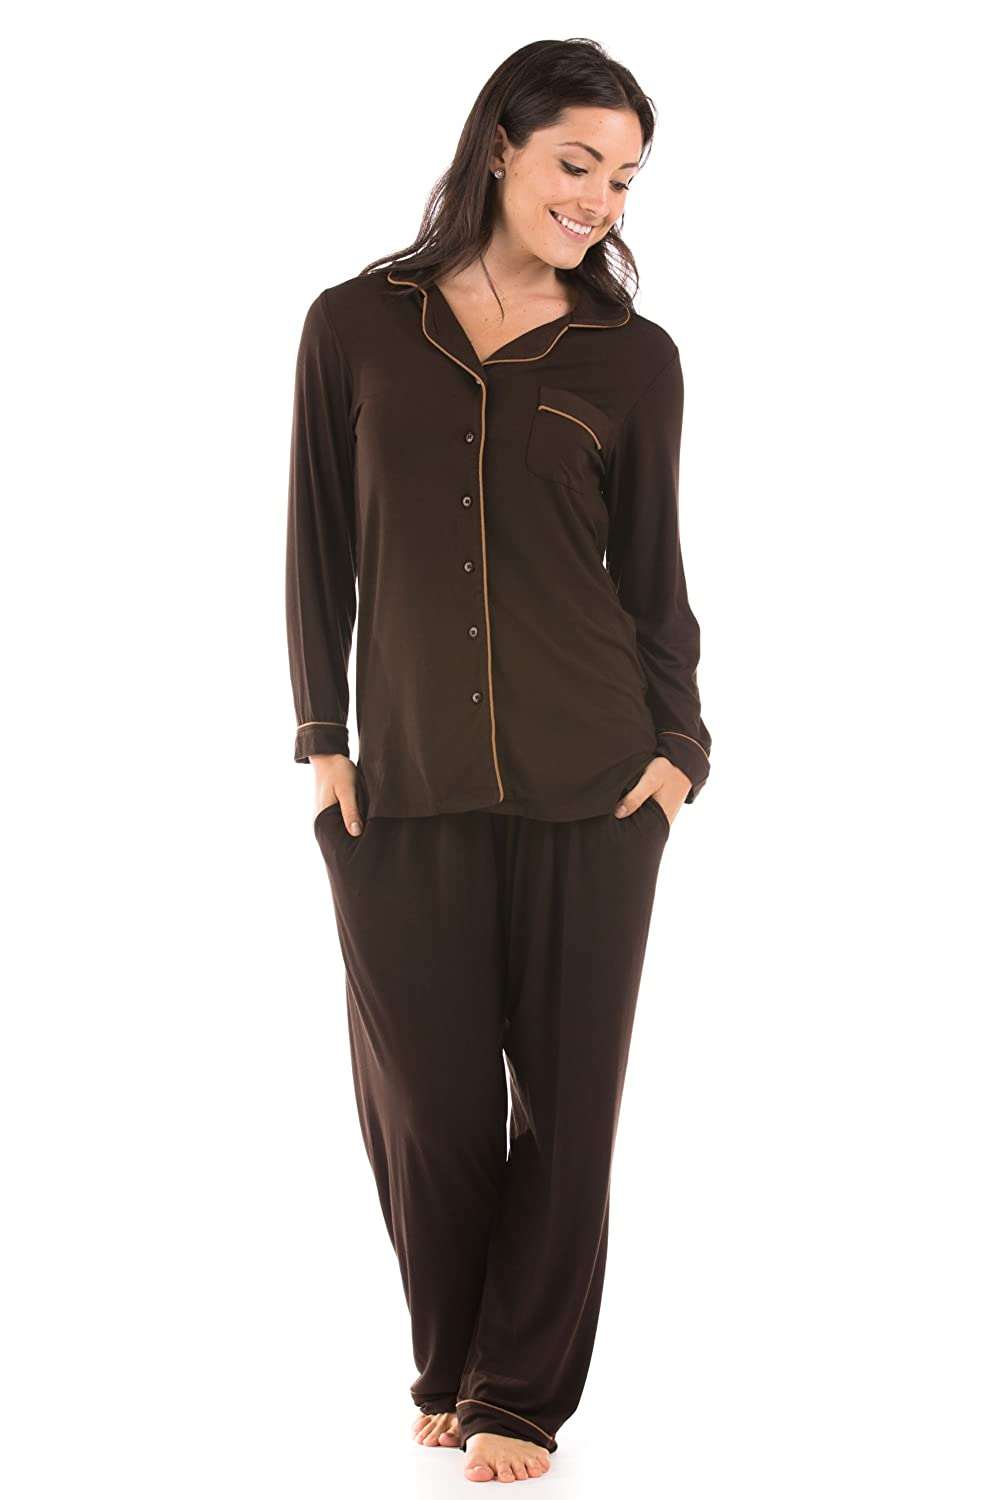 Chocolate Women's ButtonUp Sleepwear Set (Classic Comfort) EcoFriendly Gifts by Texere